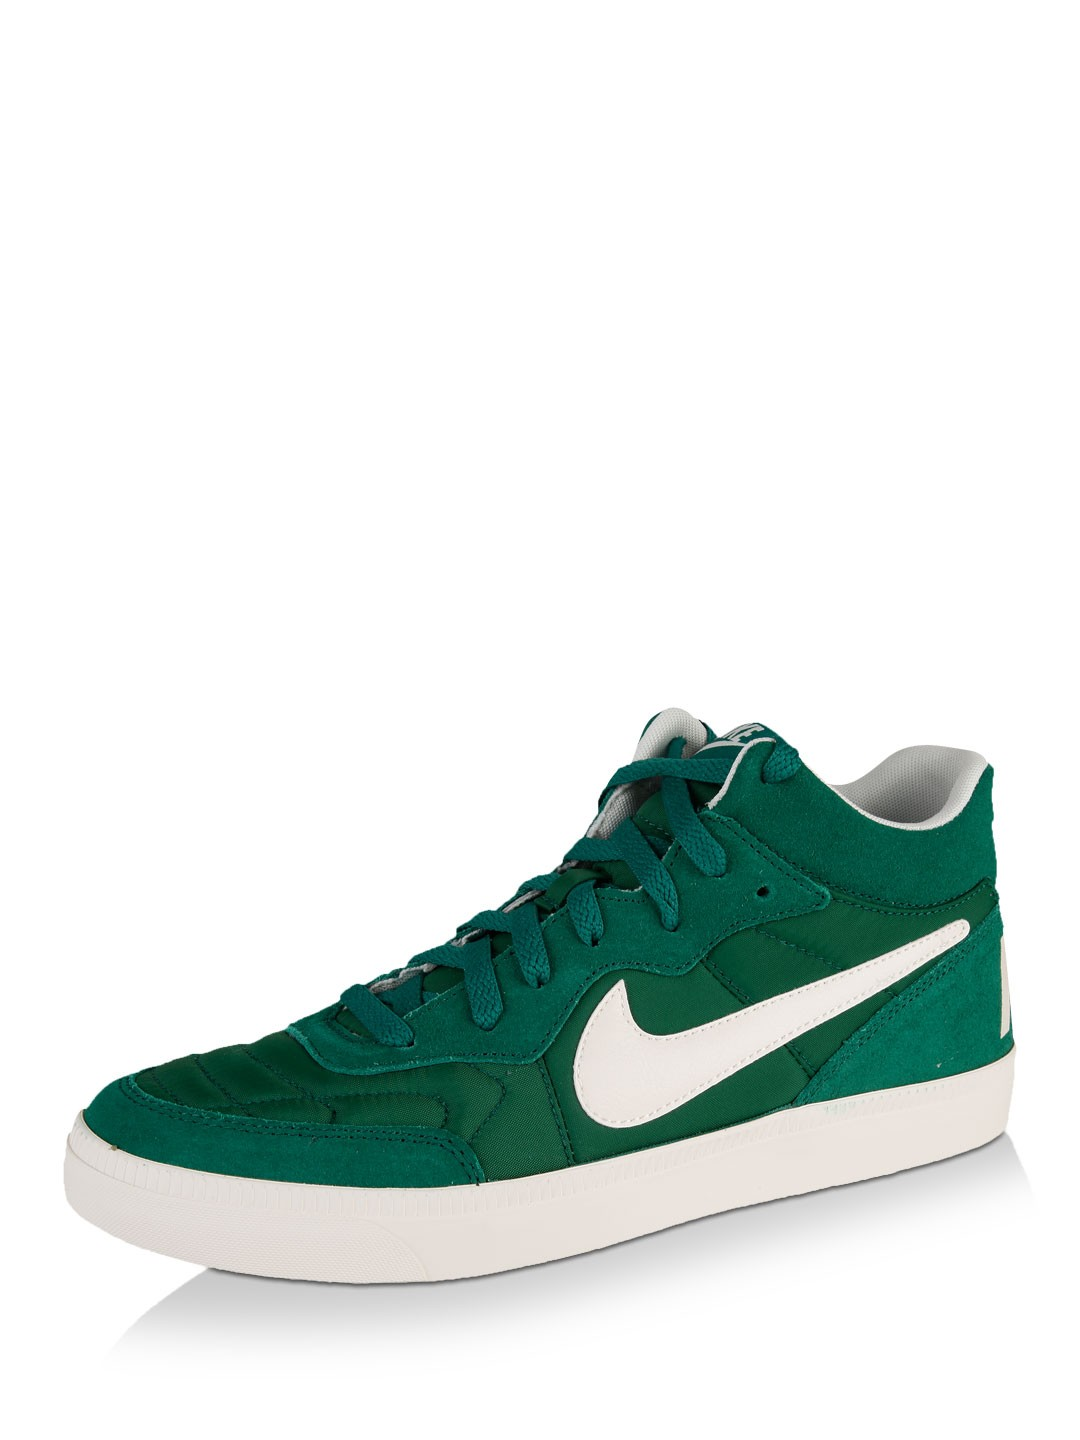 quality cheap for discount new arrival Womens Nike Free Run 2 Turquoise Women's Nike Free Run 2 Turquoise ...